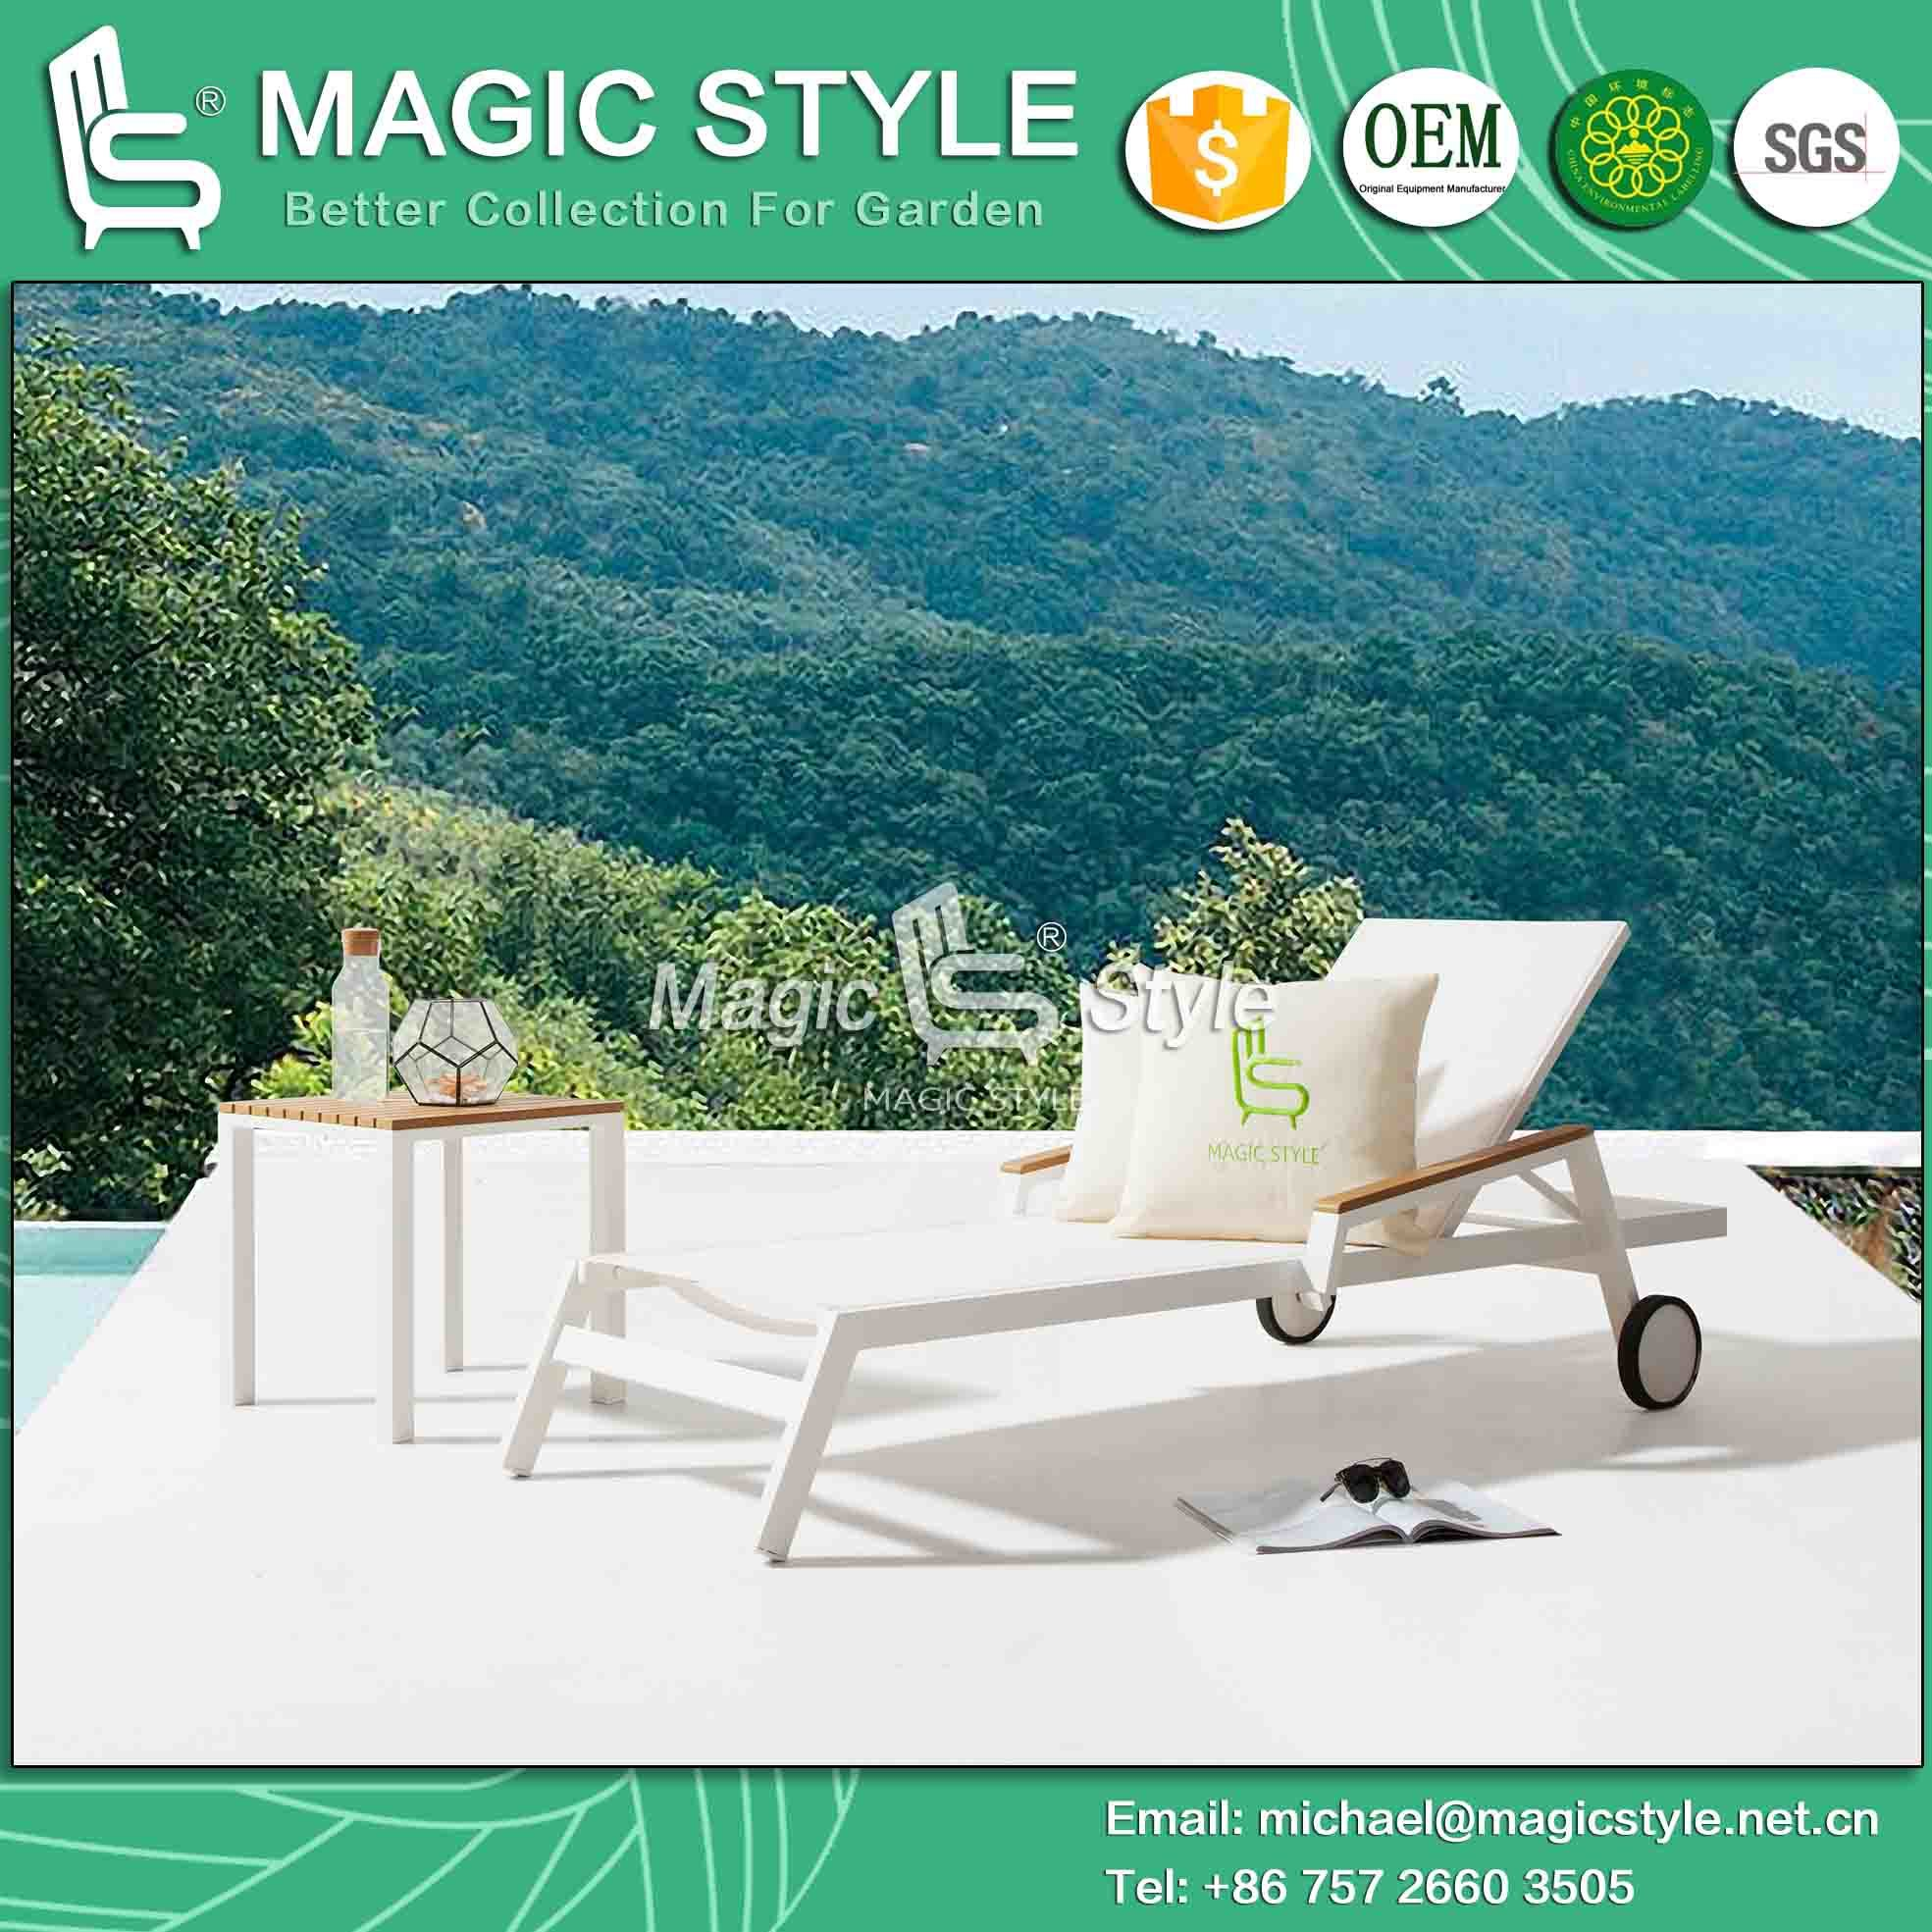 Outdoor Textile Sunlounger with Plastic Slat Garden Sling Lounger with Arm Prmotion Sunlounger Garden Sling Sun Bed Poly Wood Arm Daybed